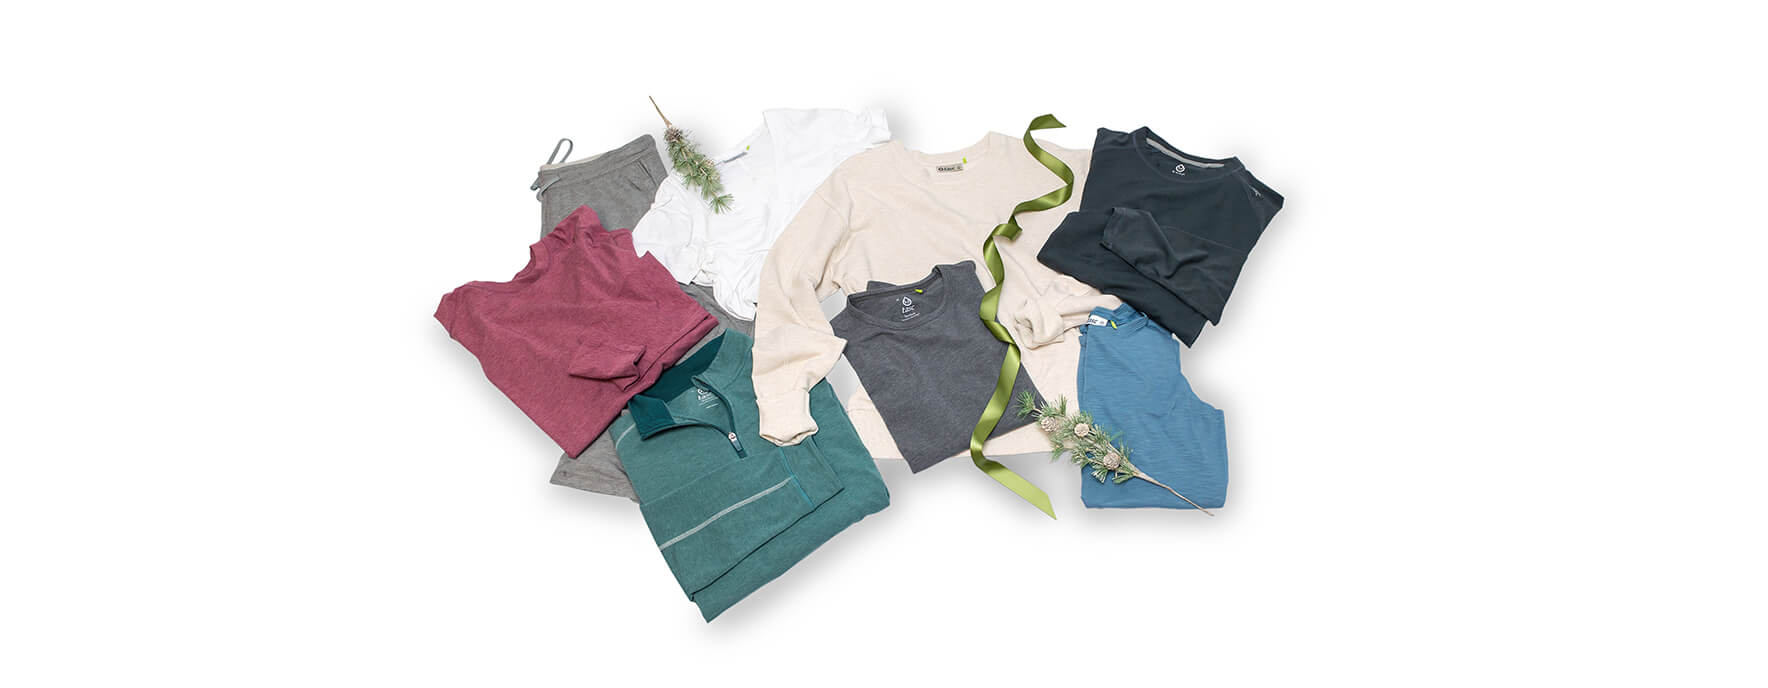 tasc performance - best sellers - holiday gift guide - bamboo apparel